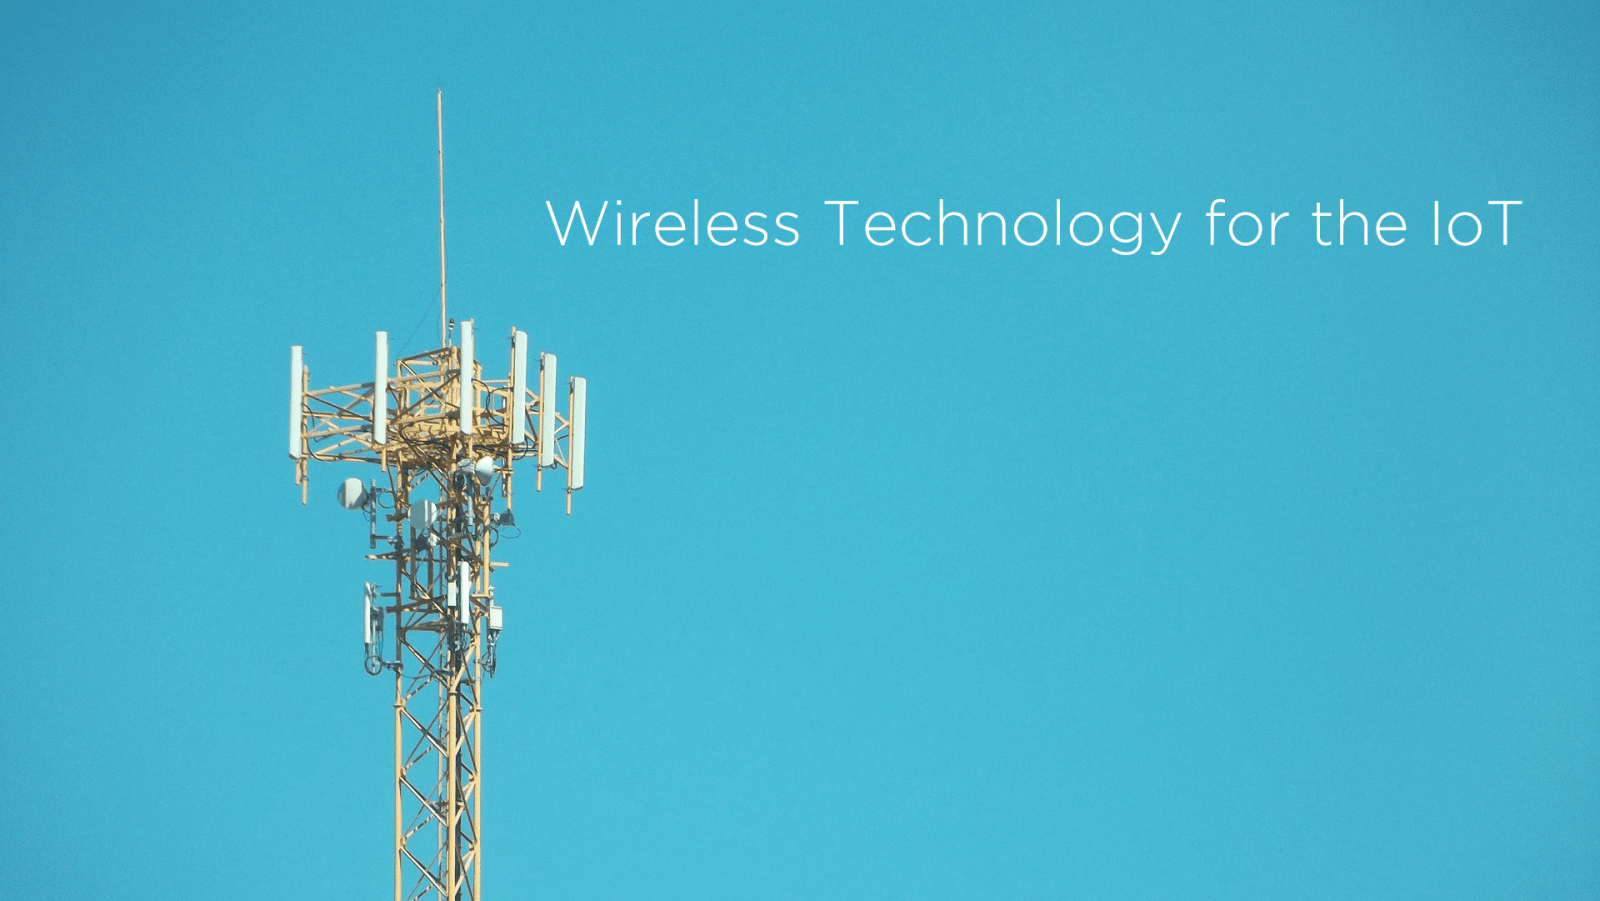 wireless technology for the IoT